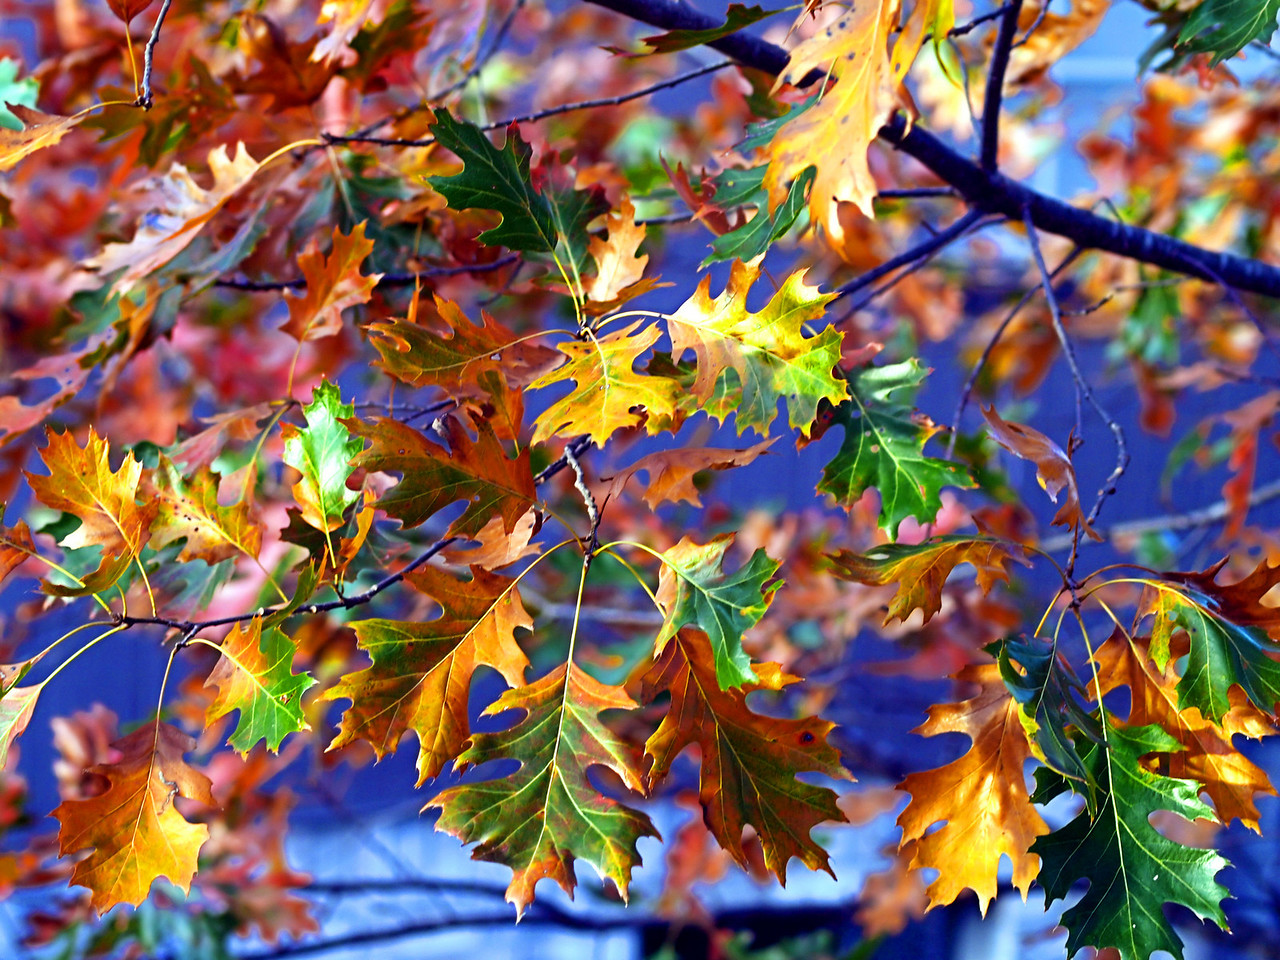 OLYMPUS DIGITAL CAMERA--Red oak leaves showing multiple colors.